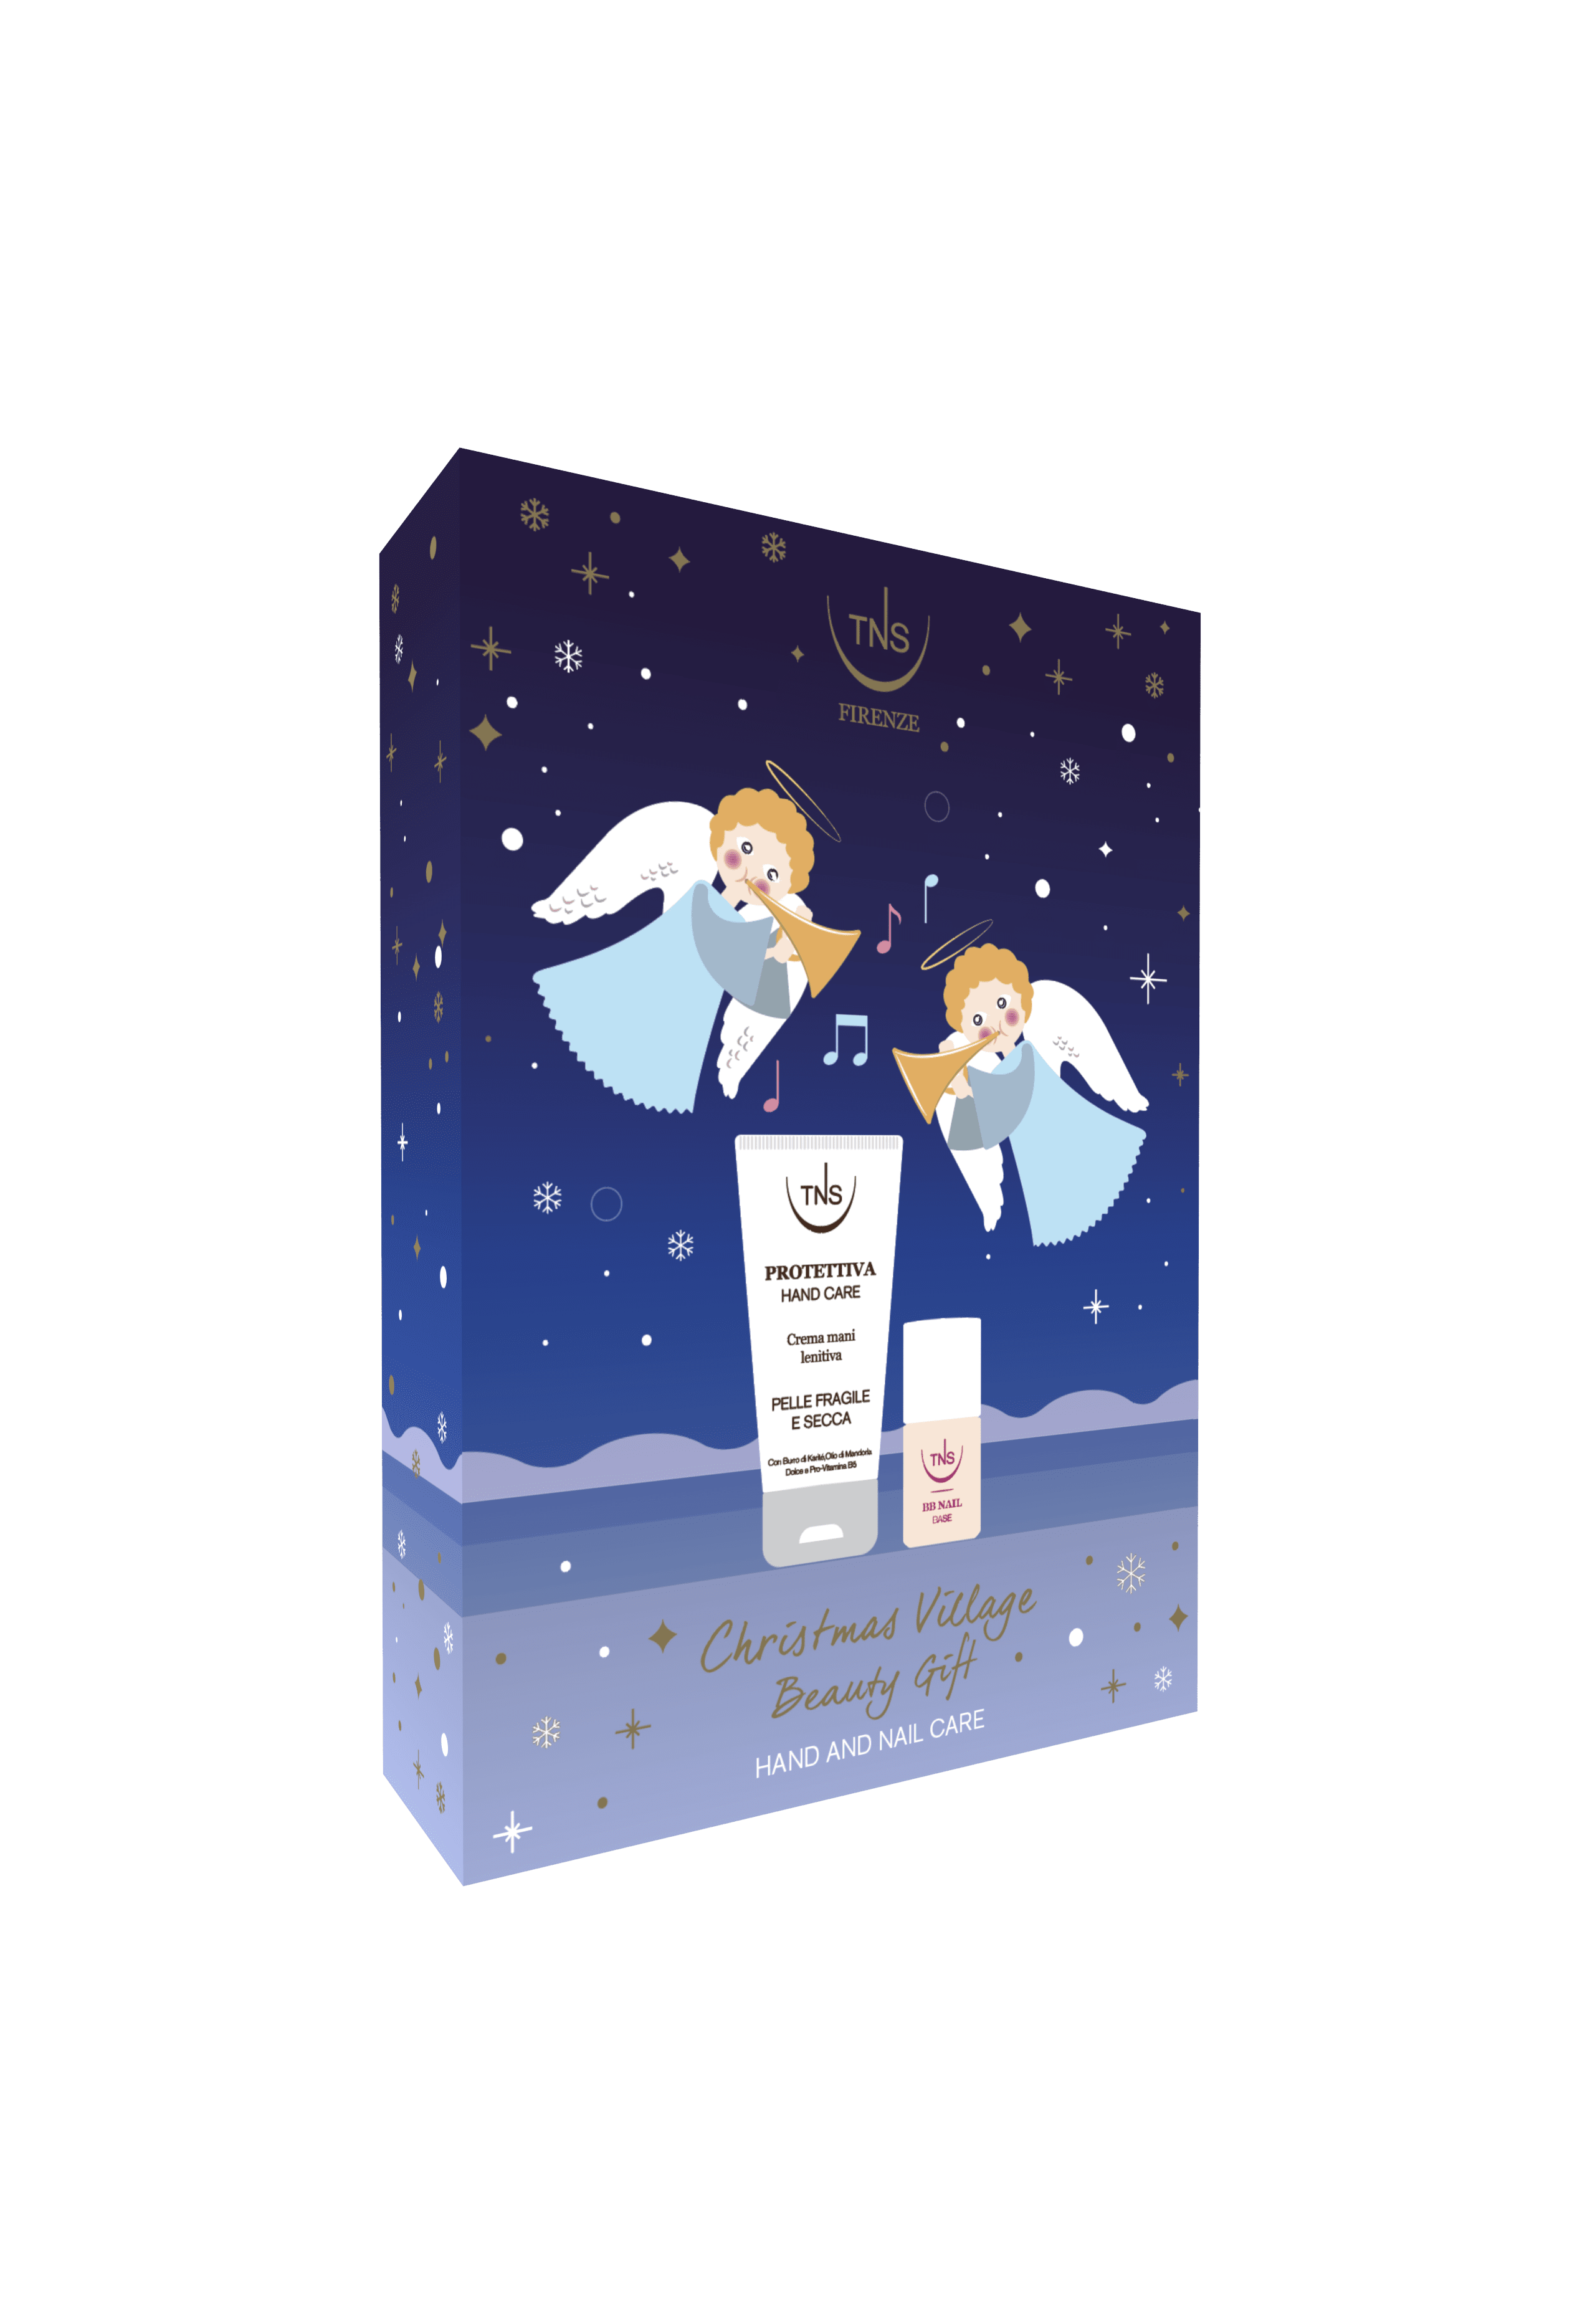 CHRISTMAS BEAUTY GIFT 6